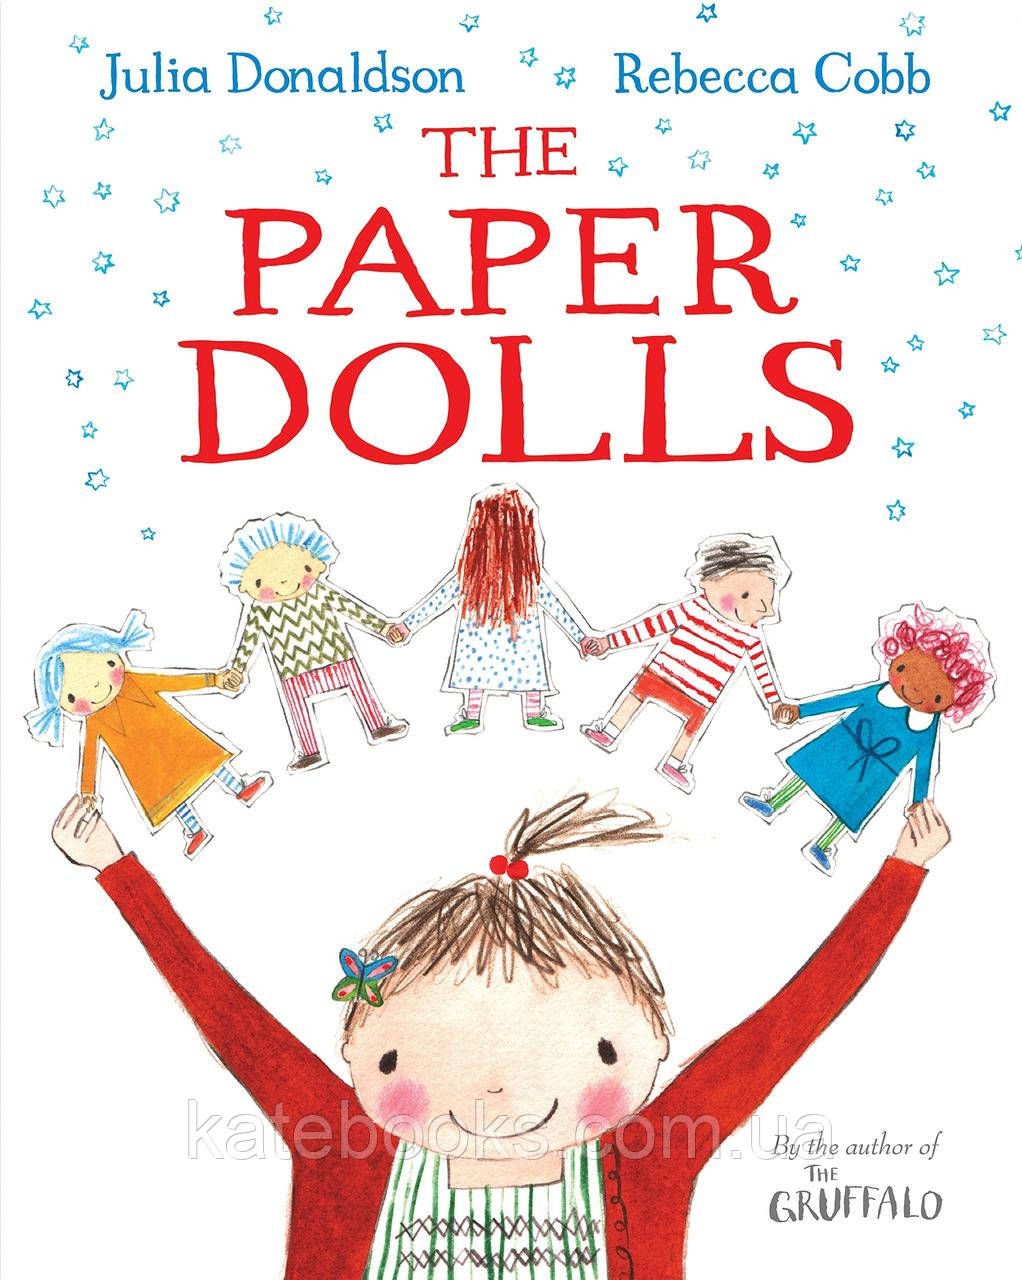 The Paper Dolls by Julia Donaldson / Джулія Дональдсон.